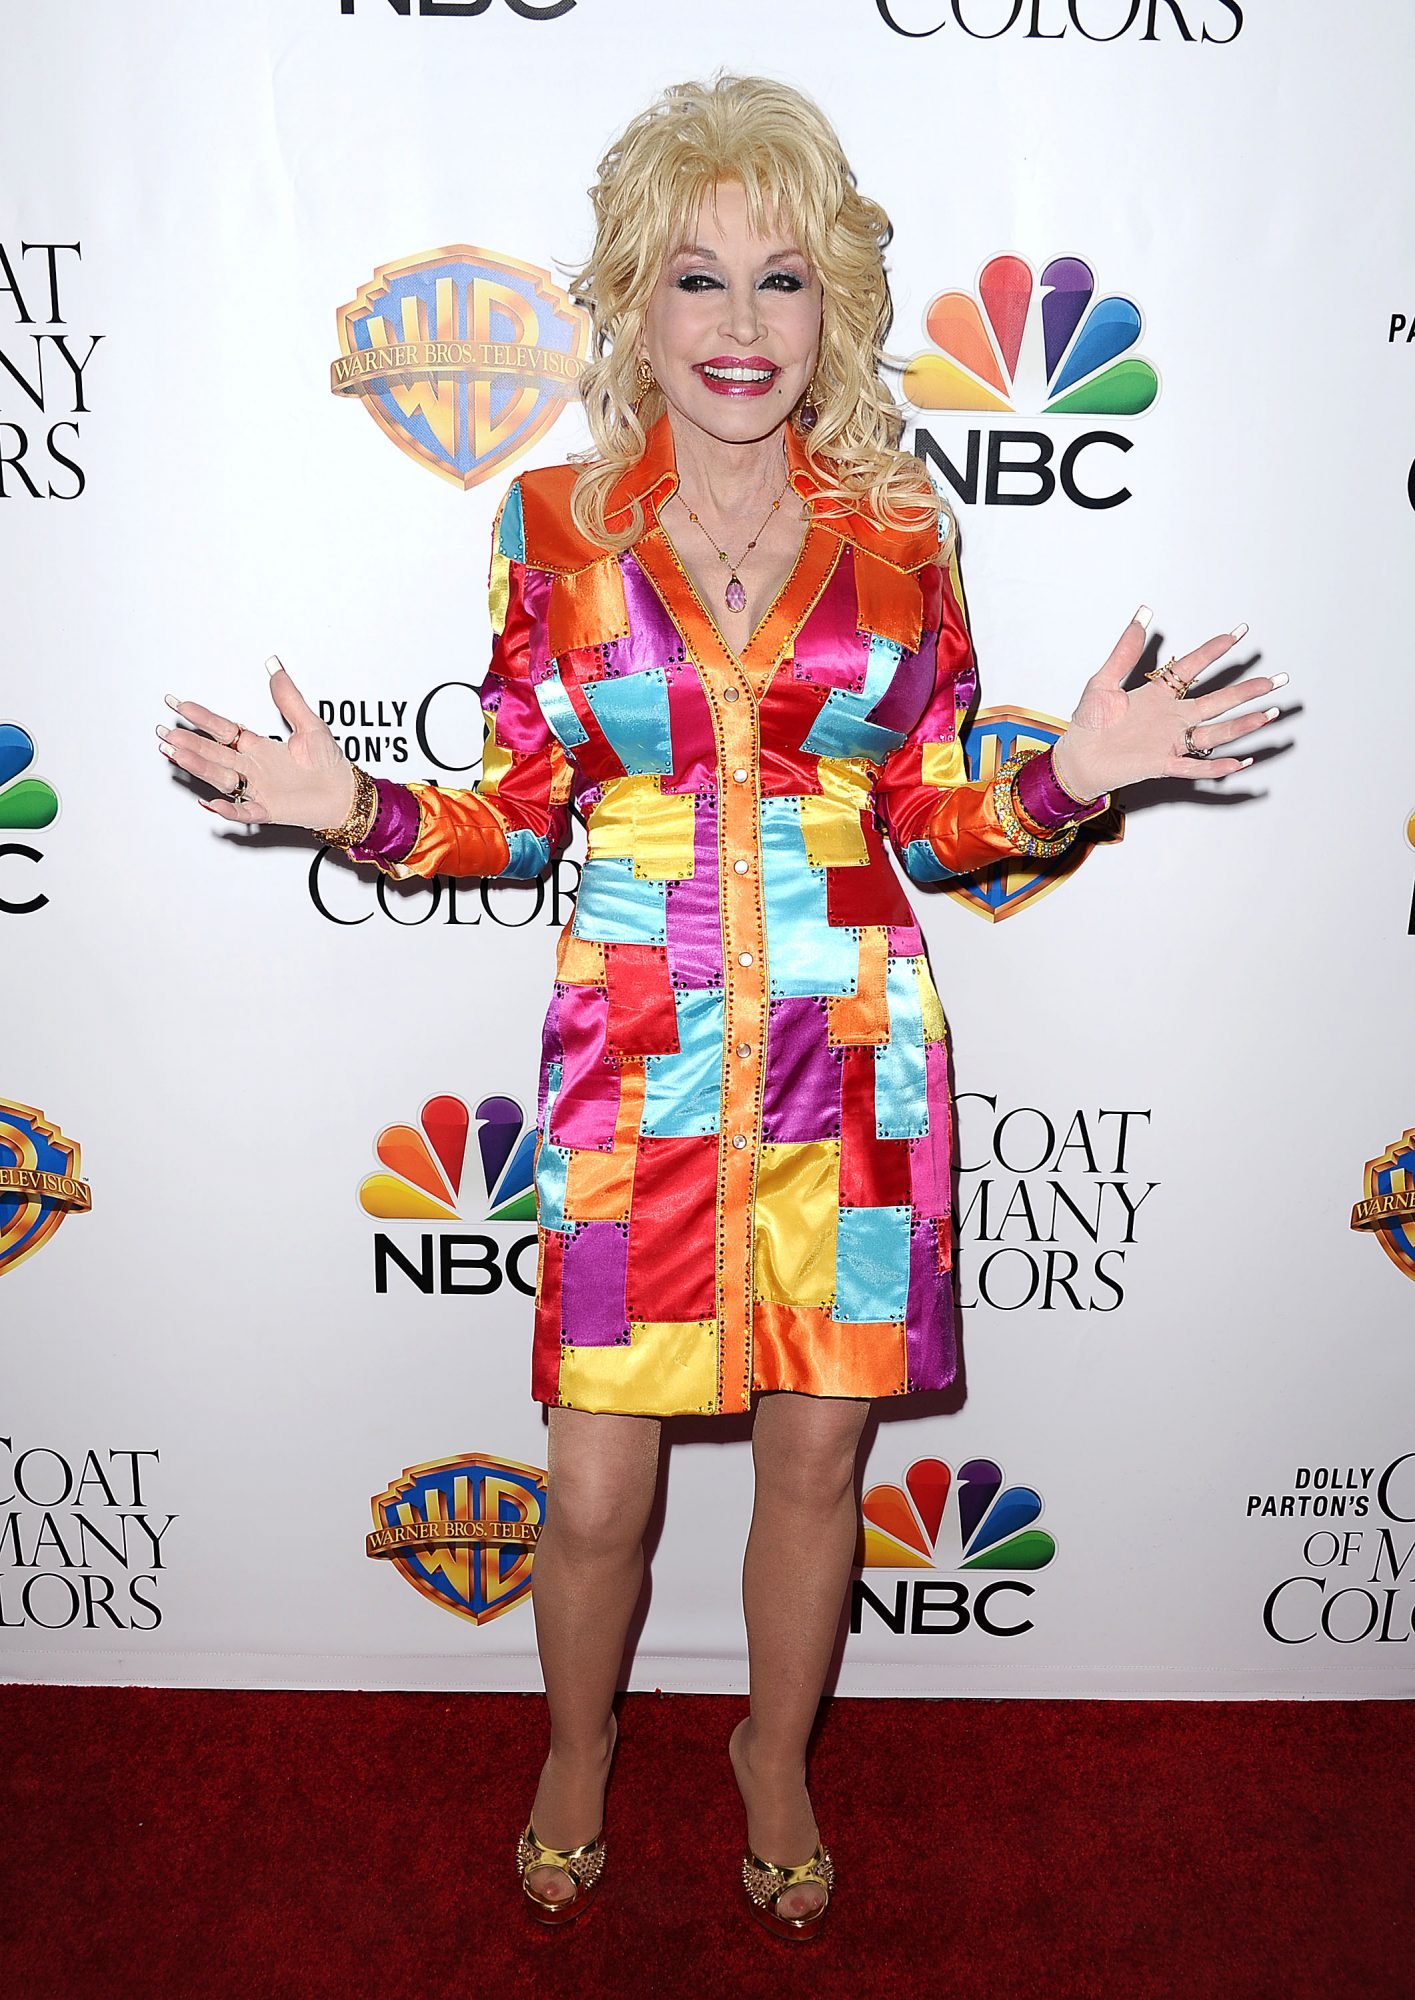 Dolly Parton Red Carpet 2015